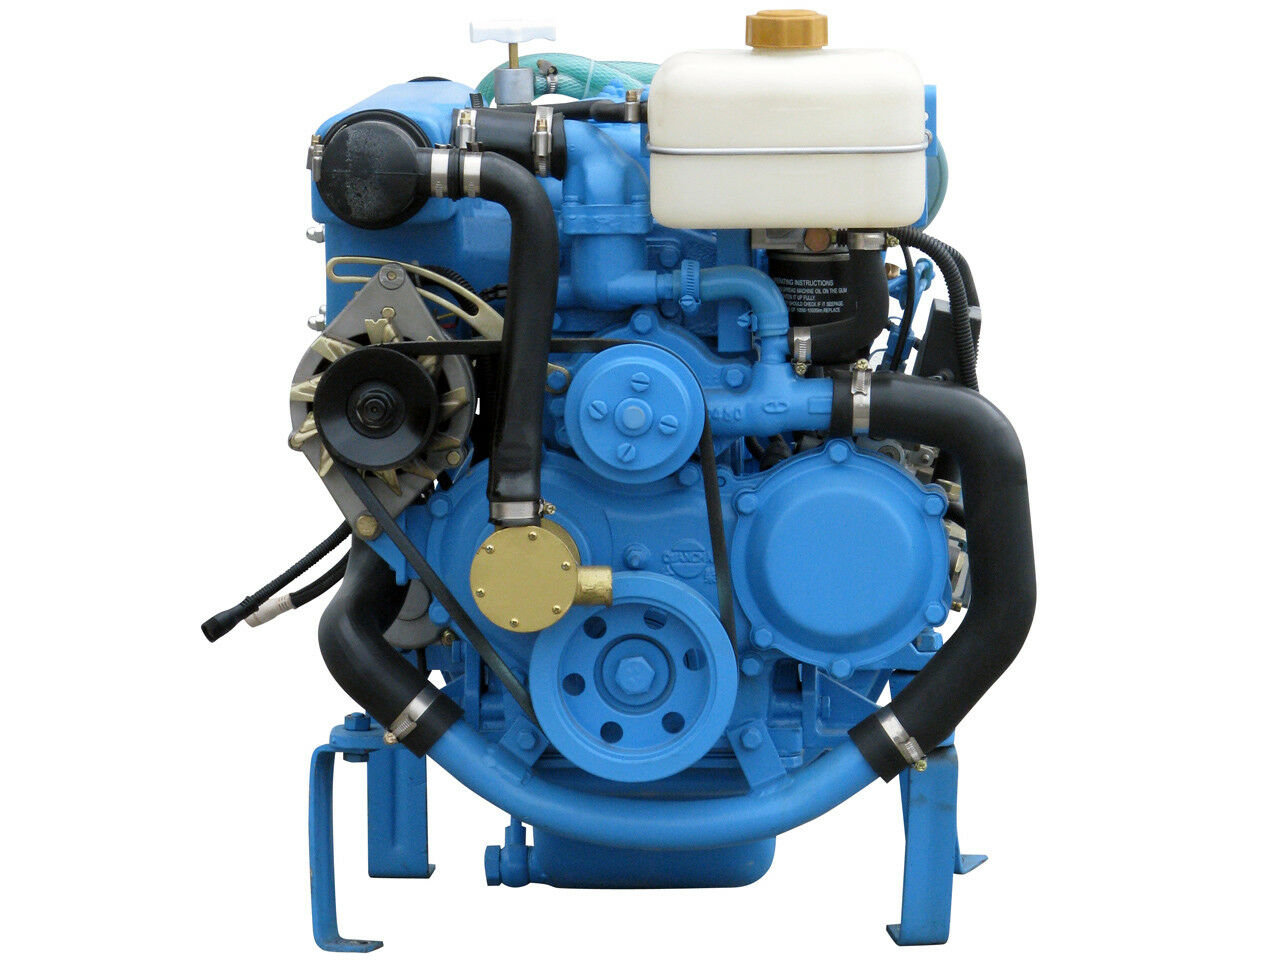 New Quality Marine Diesel Inboard Boat Engine 46hp complete with PRM125  gearbox